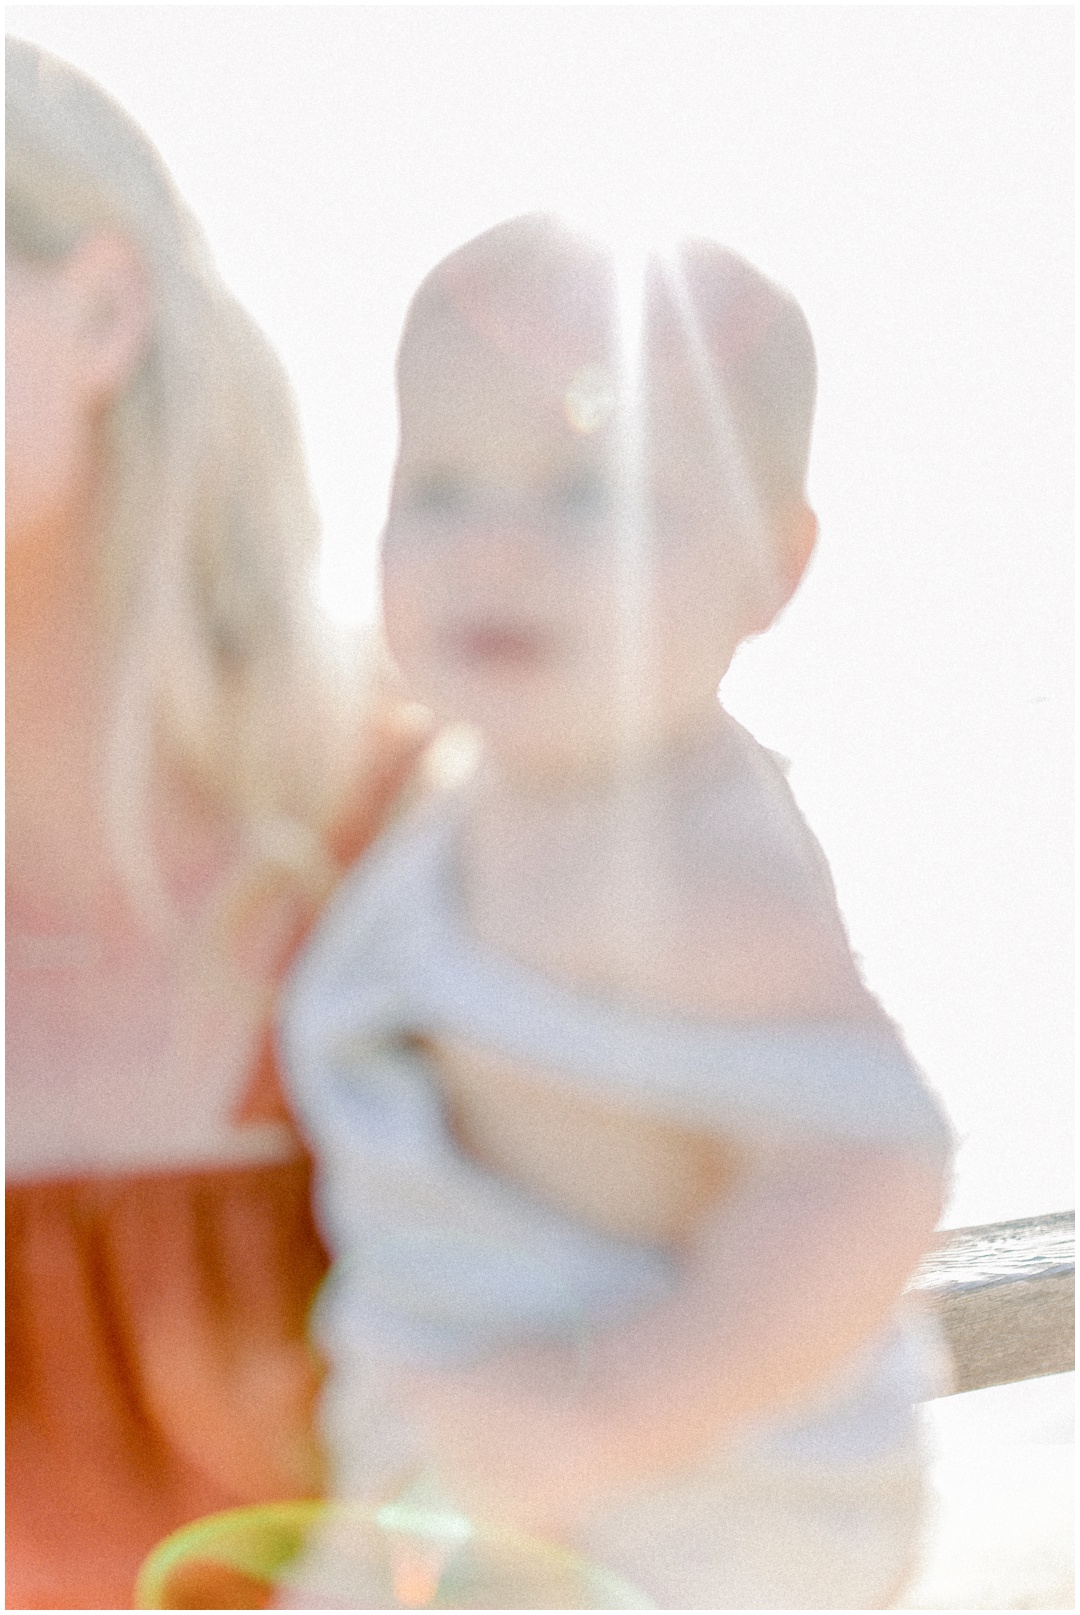 Newport_Beach_Newborn_Light_Airy_Natural_Photographer_Newport_Beach_Photographer_Orange_County_Family_Photographer_Cori_Kleckner_Photography_Huntington_Beach_Photographer_Family_OC_Newborn_Kelly_Bandak_Nik_Bandak__3500.jpg